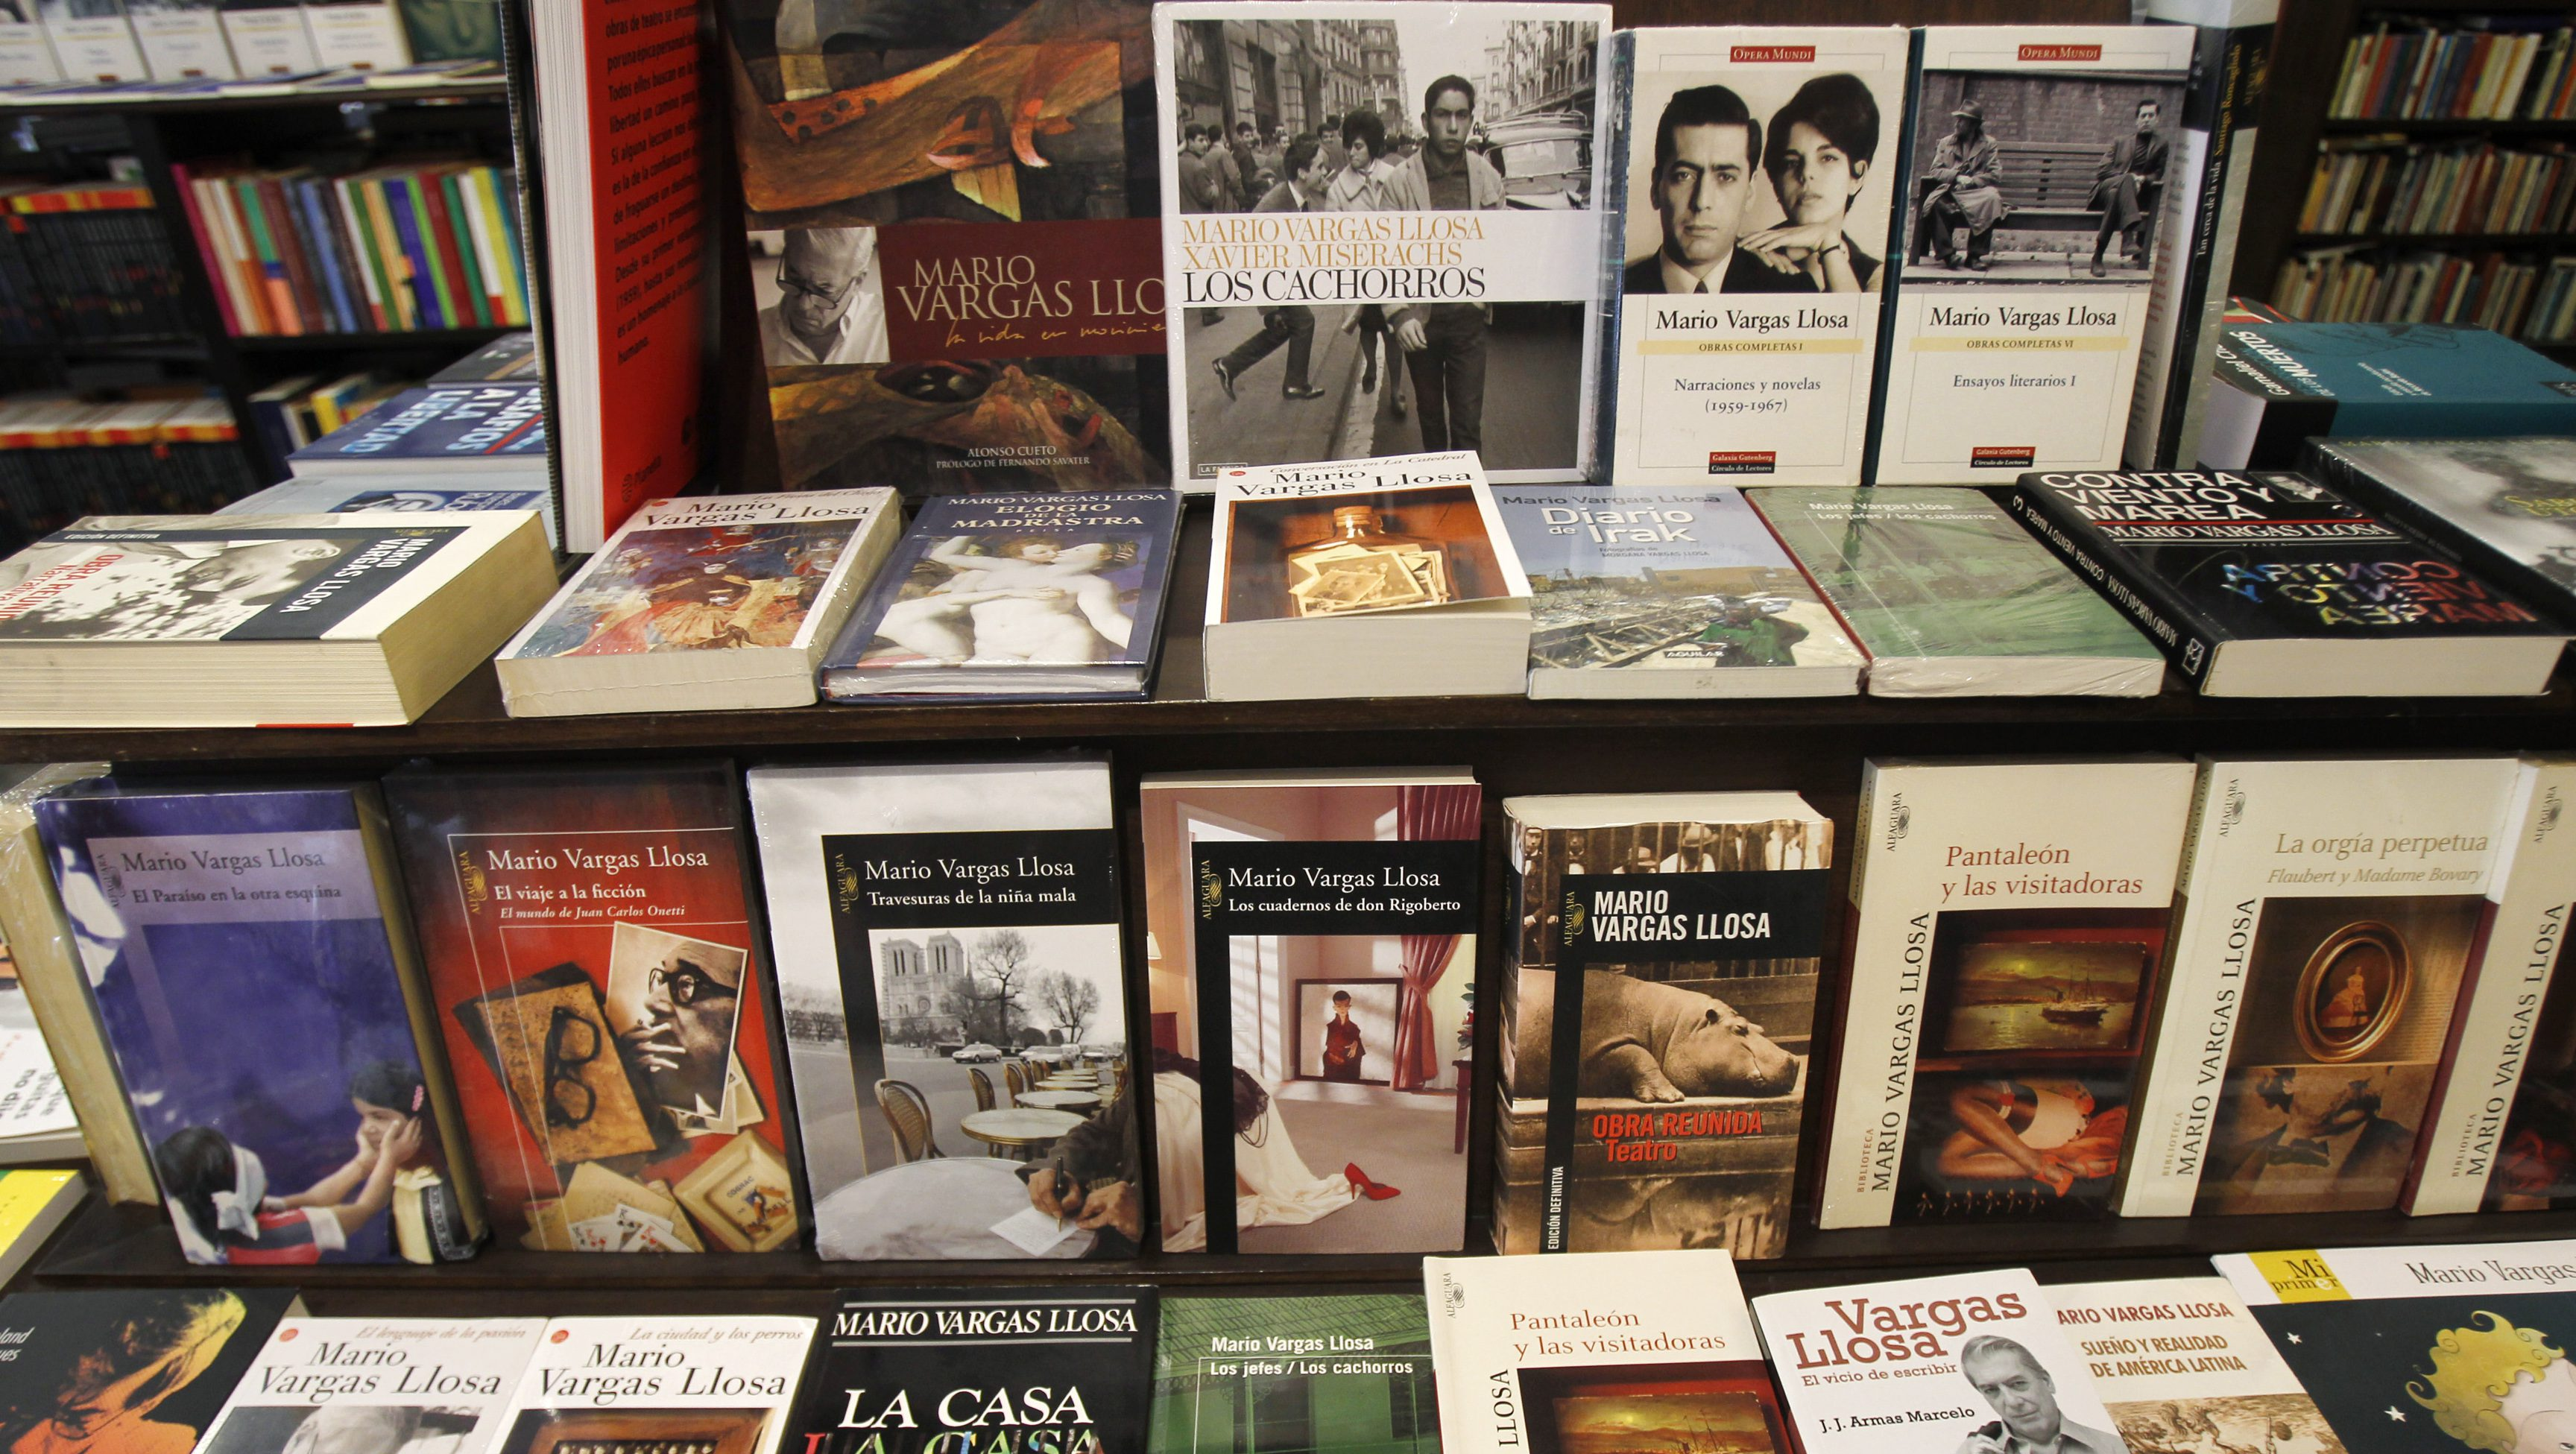 books by Mario Vargas Llosa